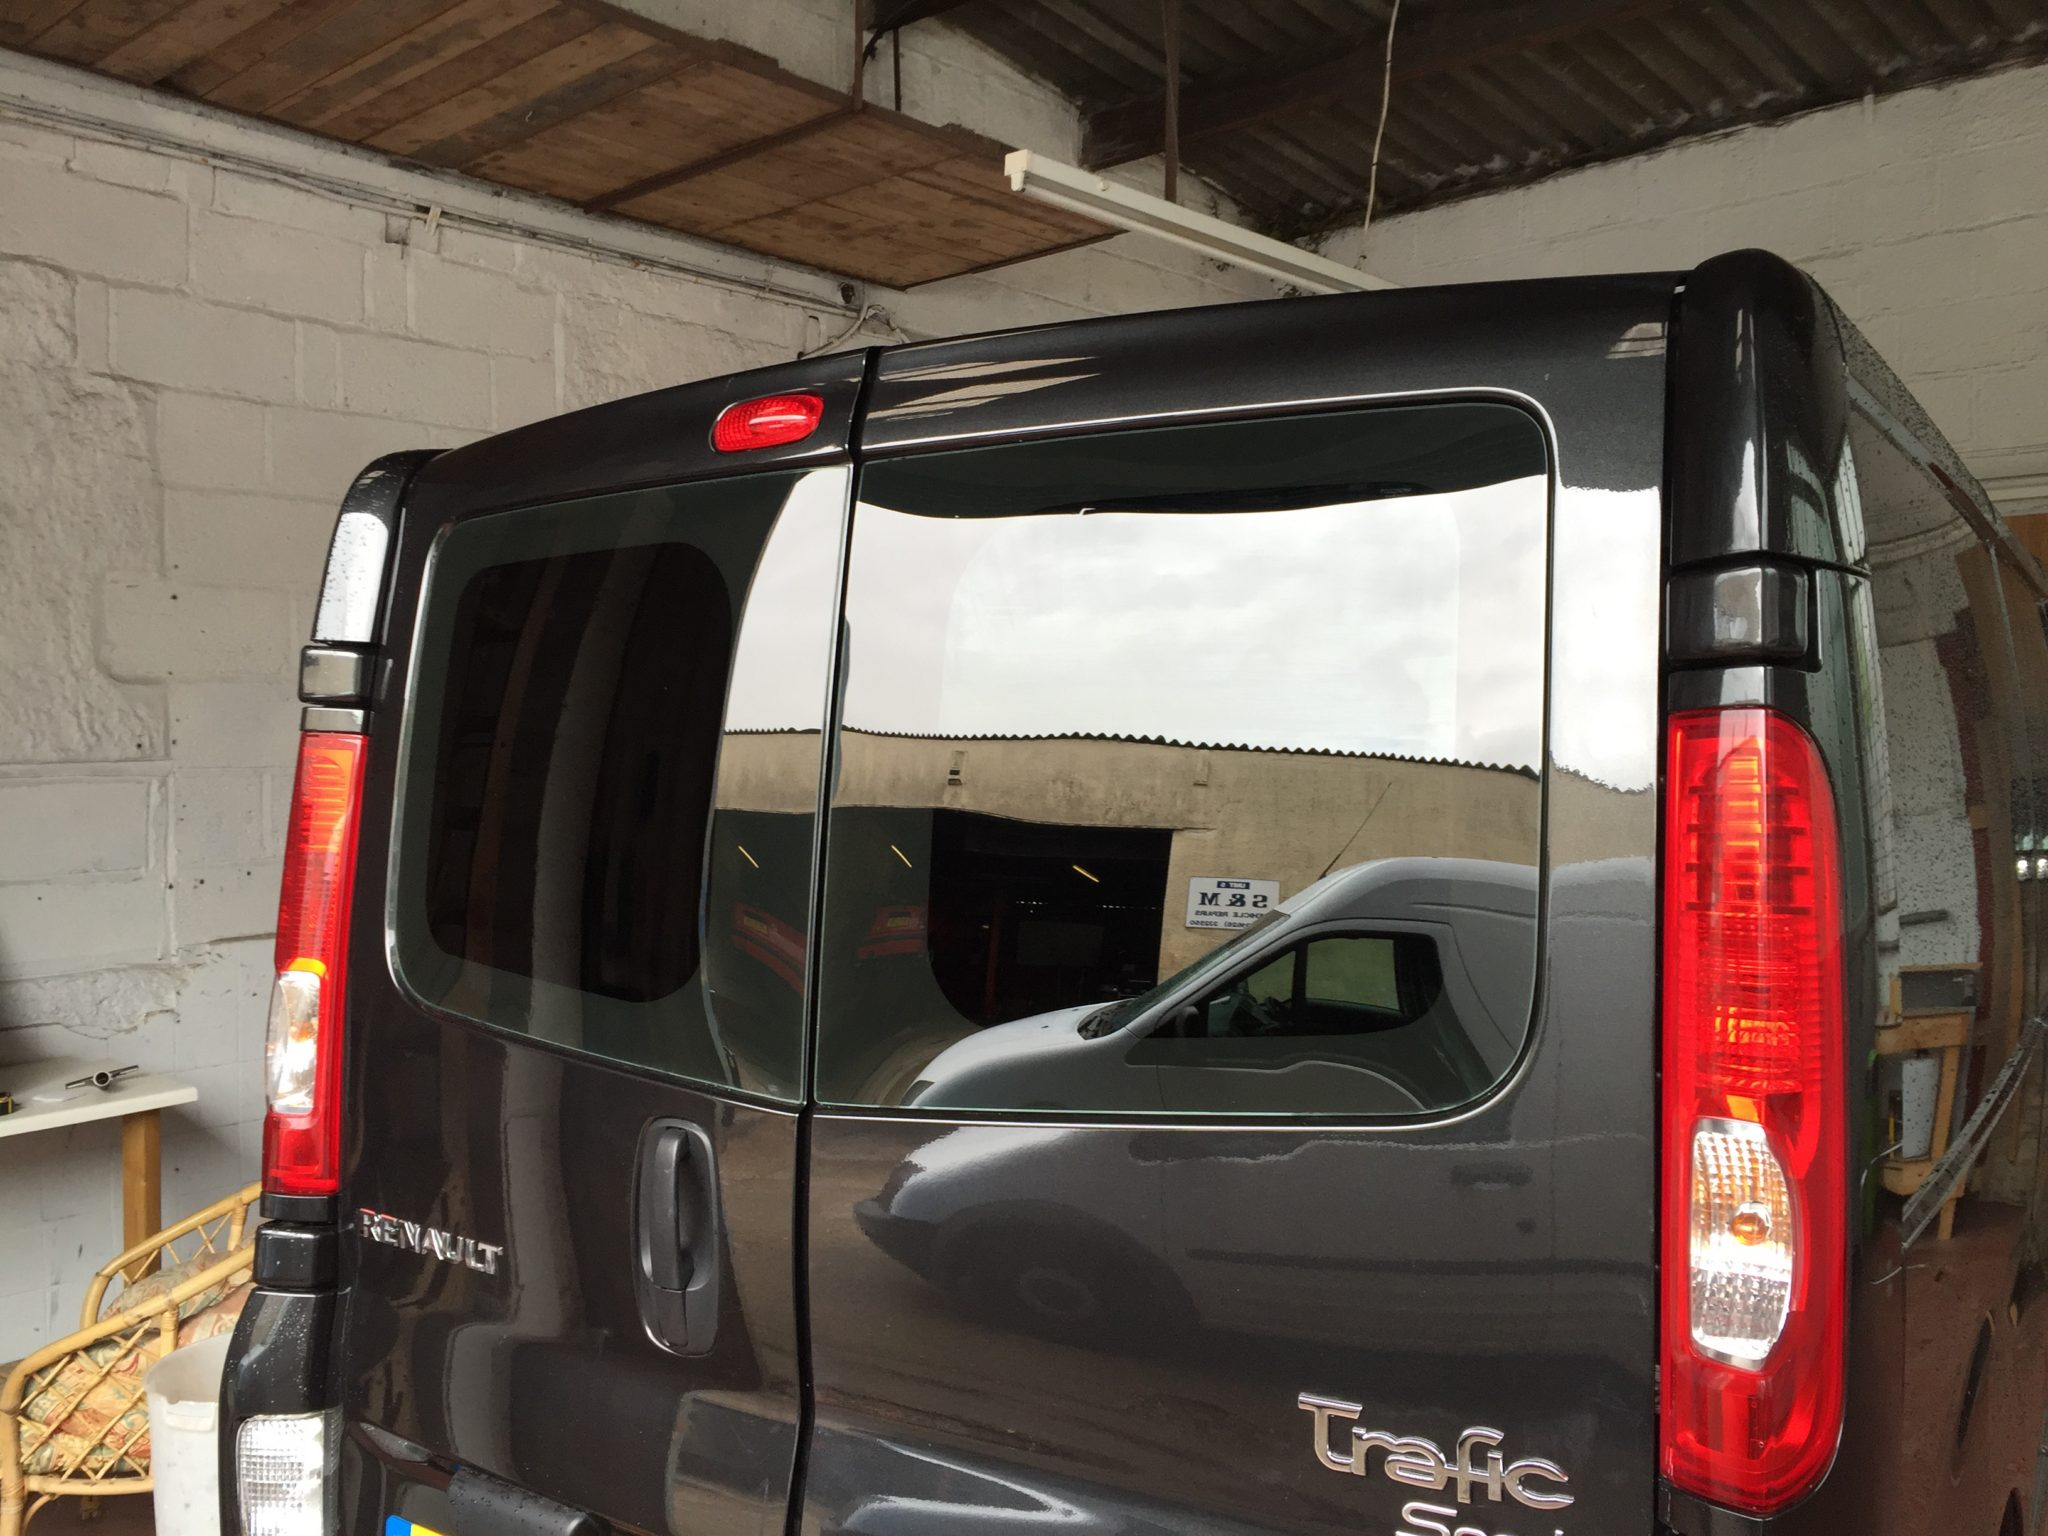 Renault Trafic Window Tinting